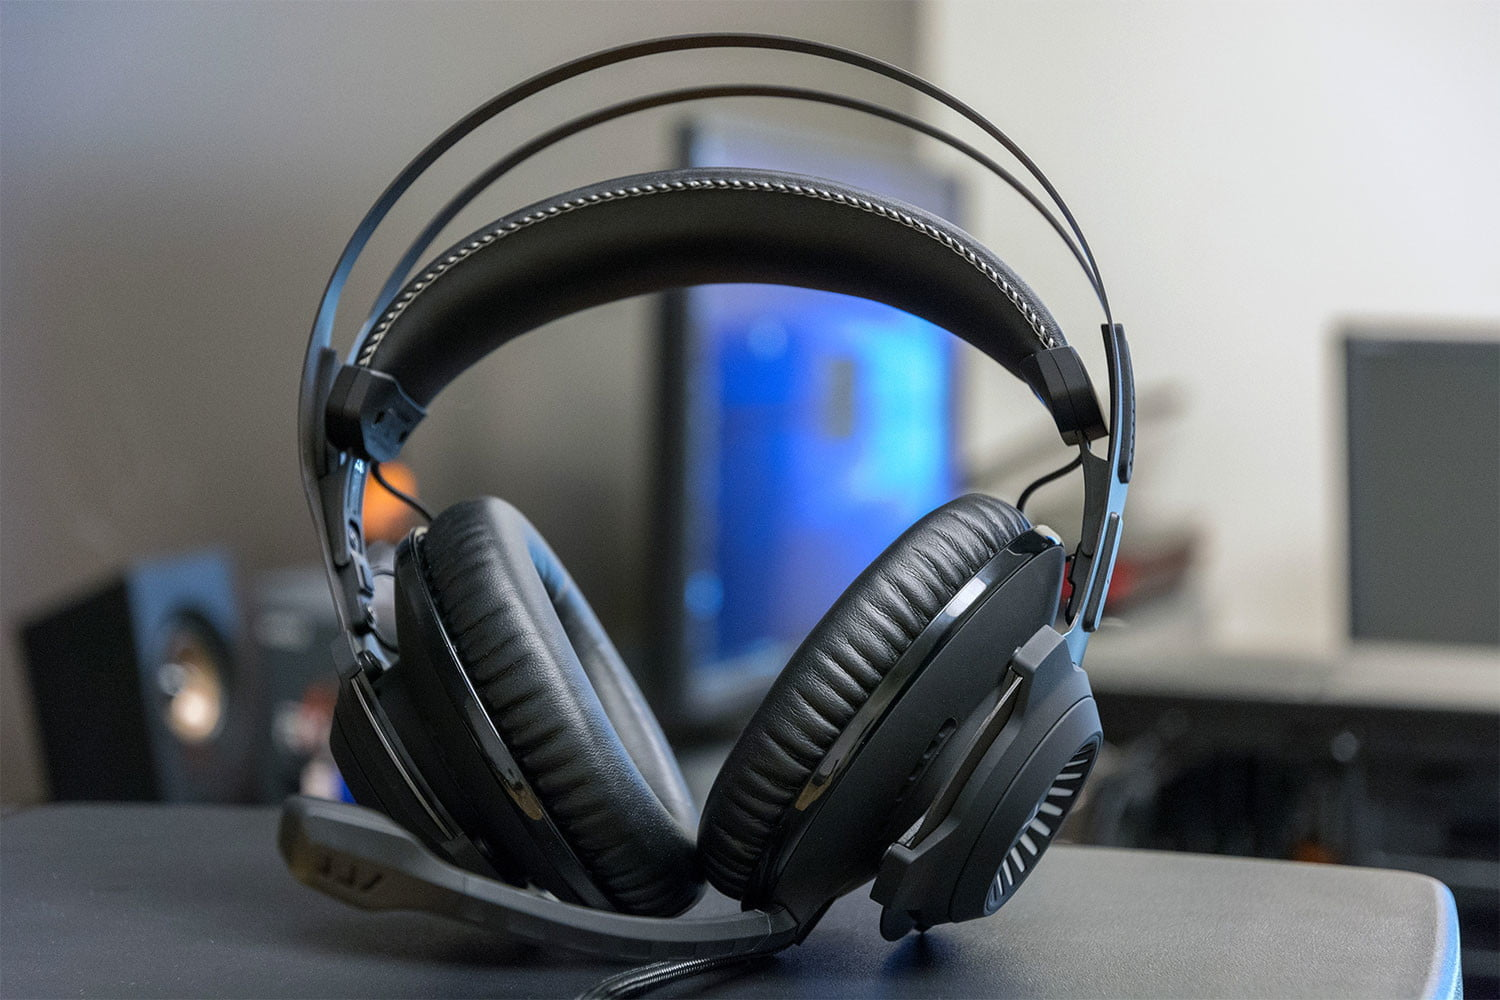 The Best Gaming Headsets of 2018 | Digital Trends